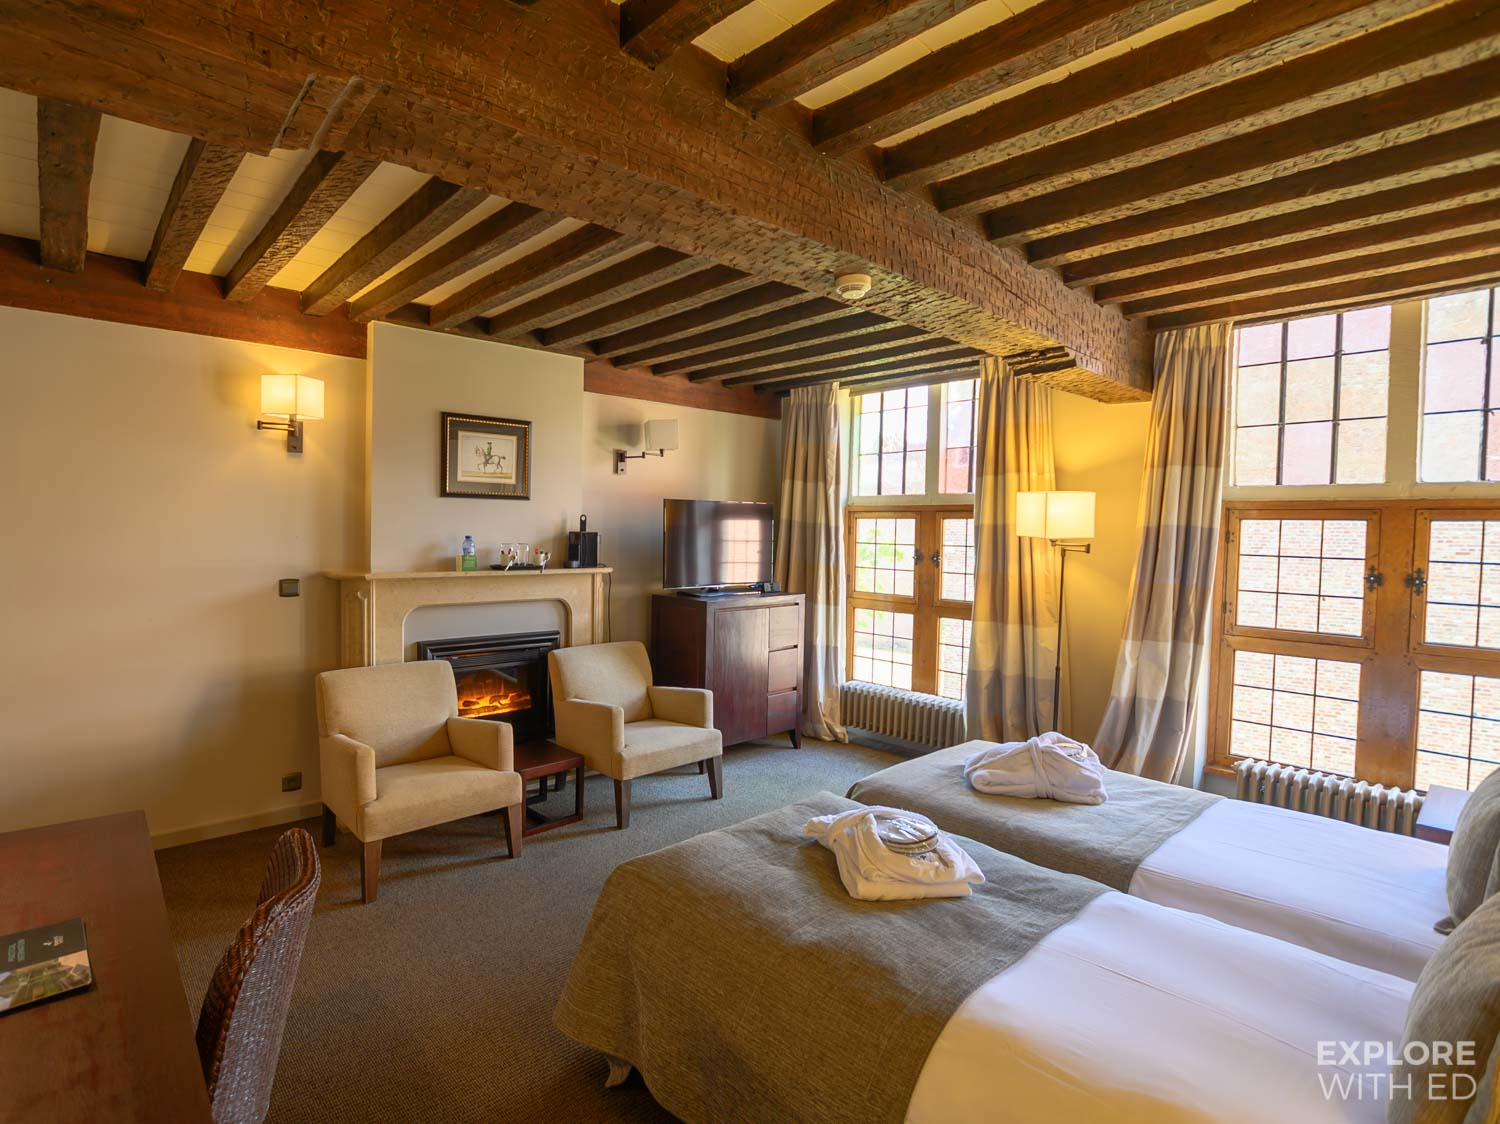 Martin's Klooster boutique hotel in Leuven